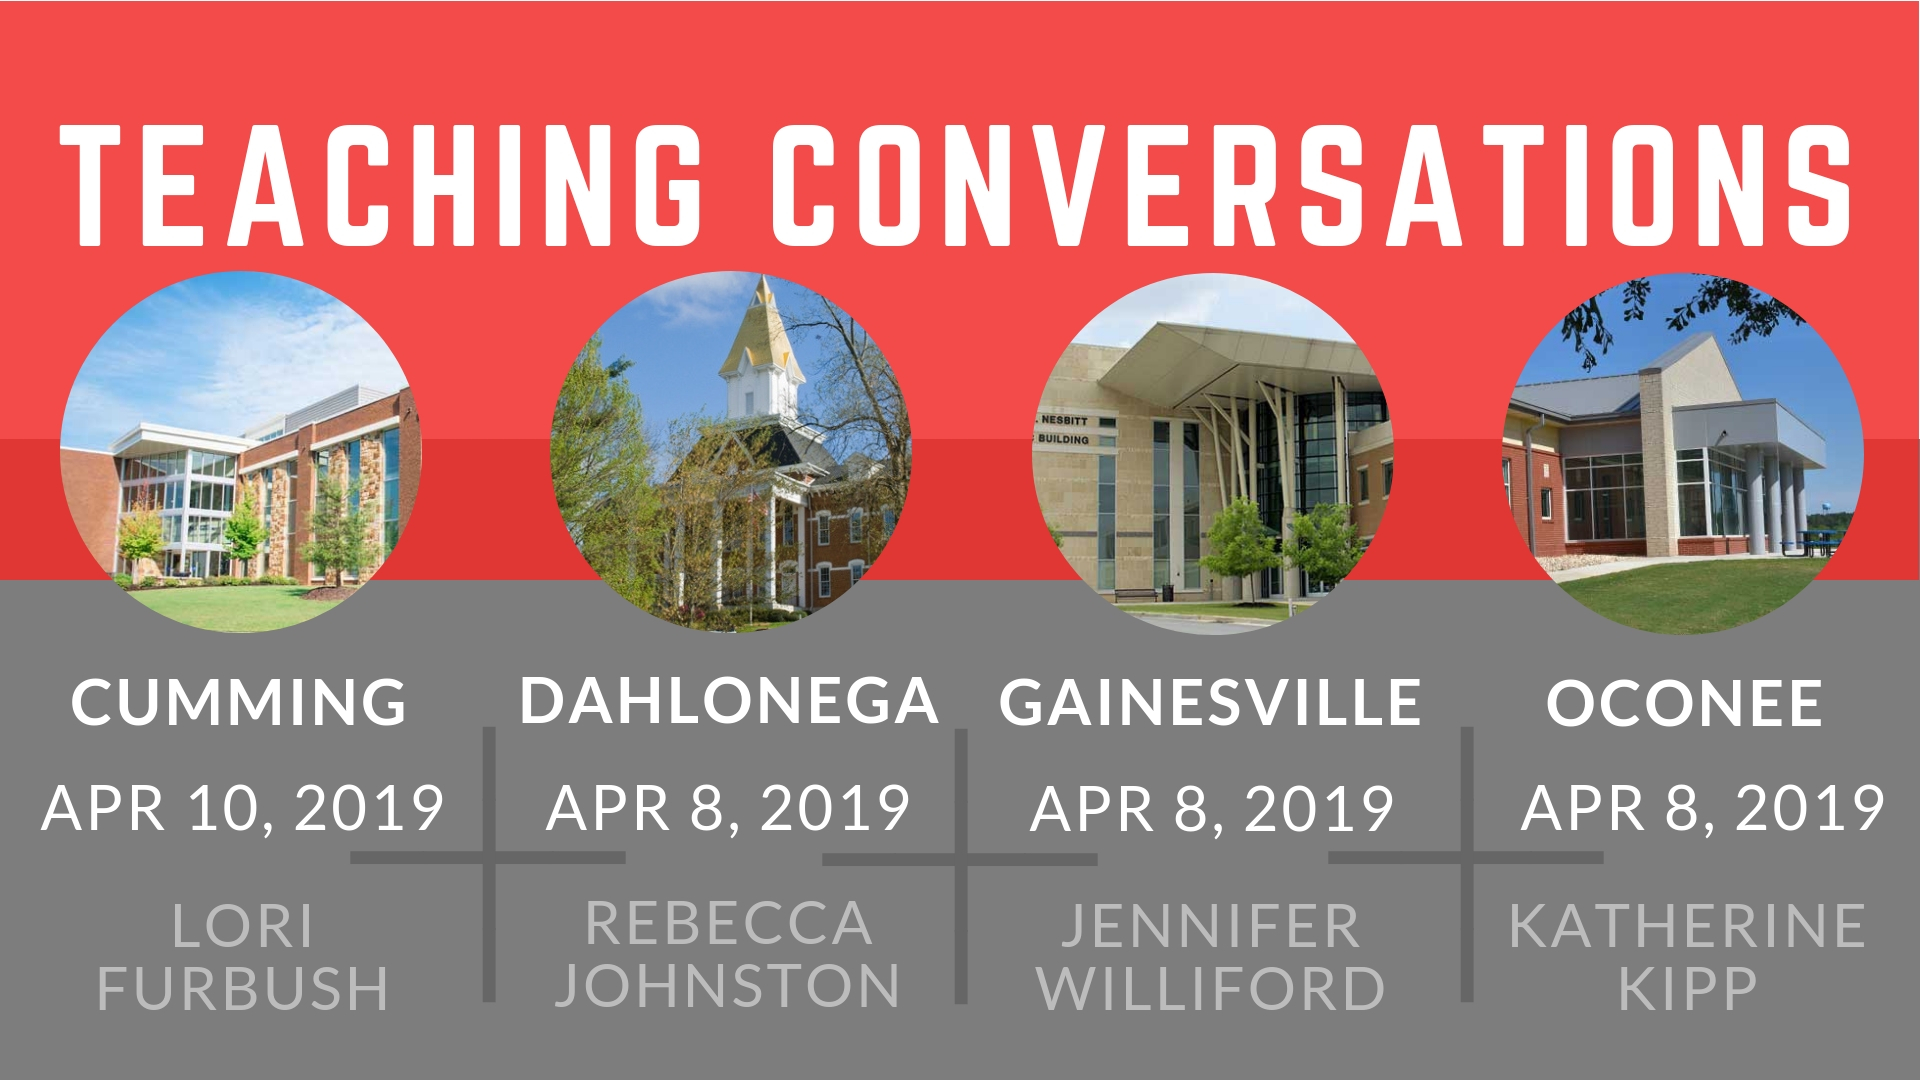 Teaching Conversations workshop information for Cumming, Dahlonega, Gainesville, and Oconee campuses